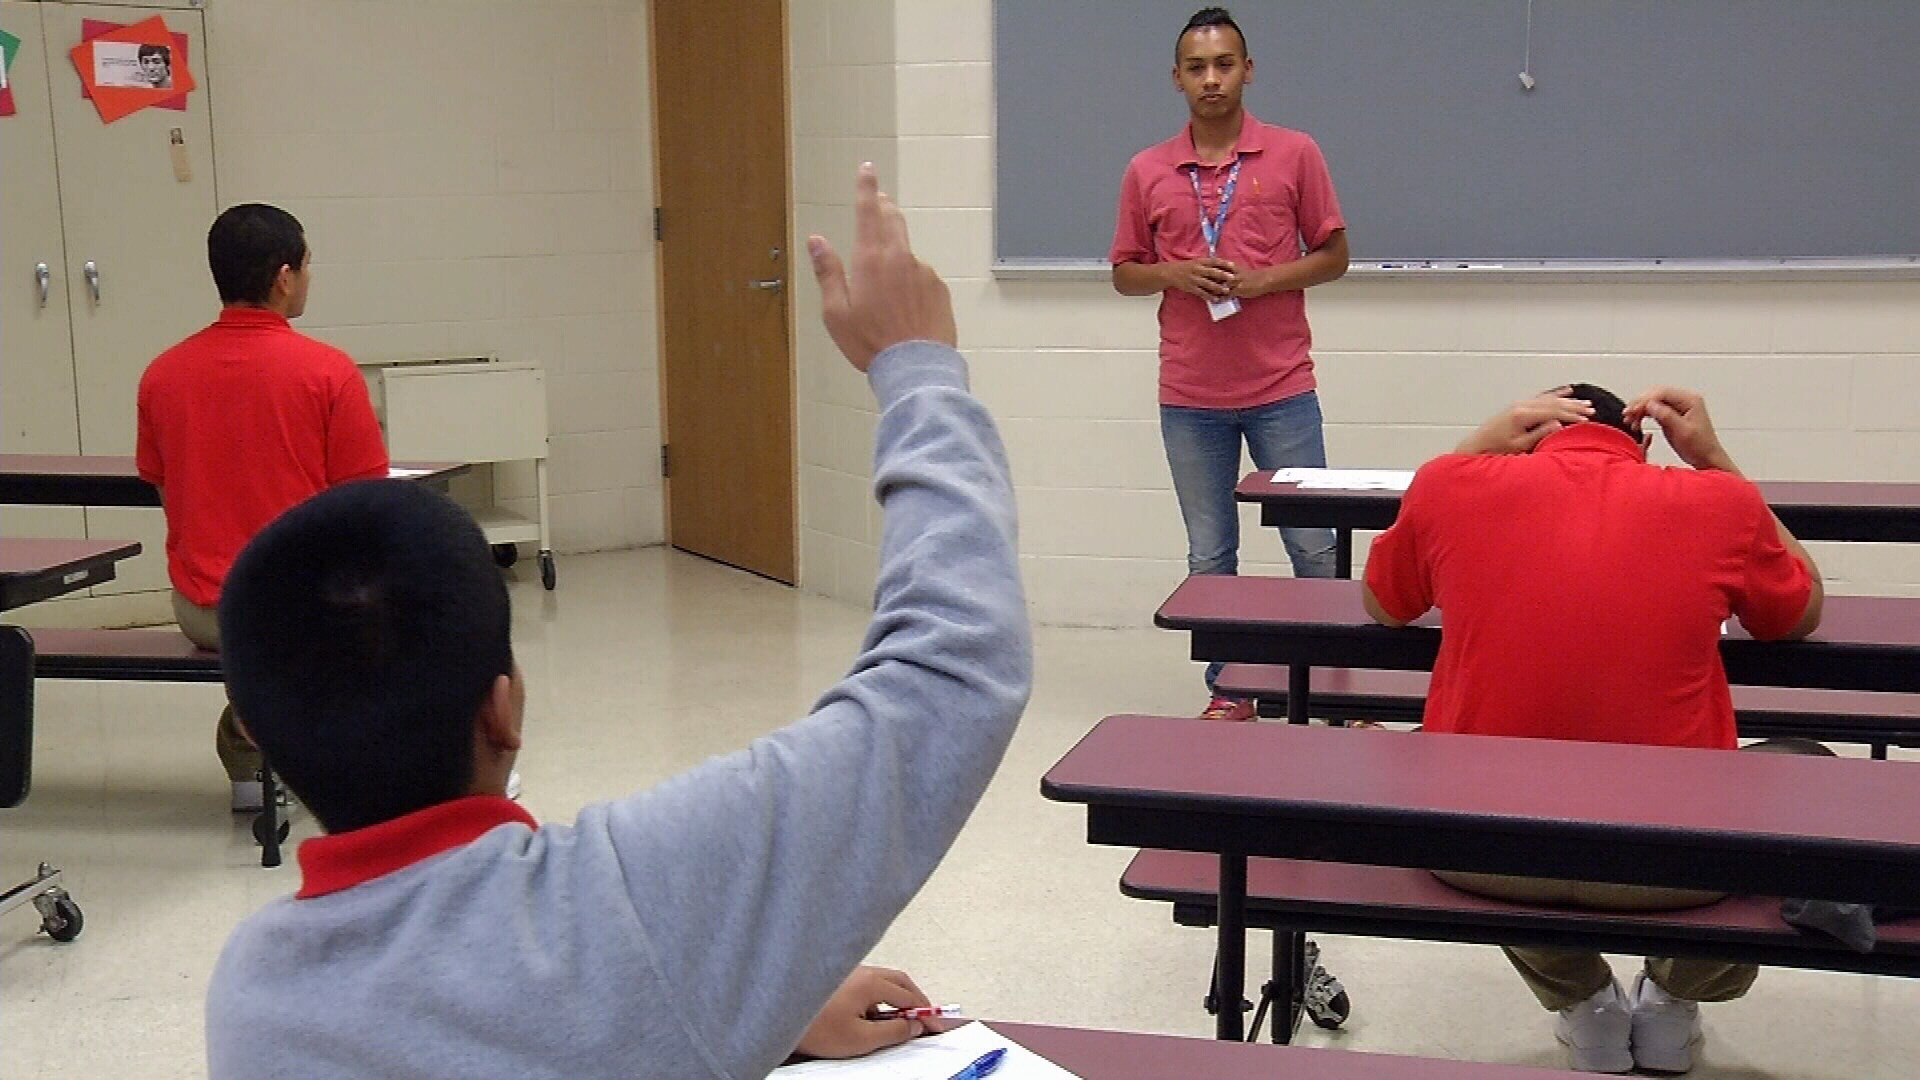 Three new rehabilitation programs are replacing boot camp at the Nueces County Juvenile Justice Center.